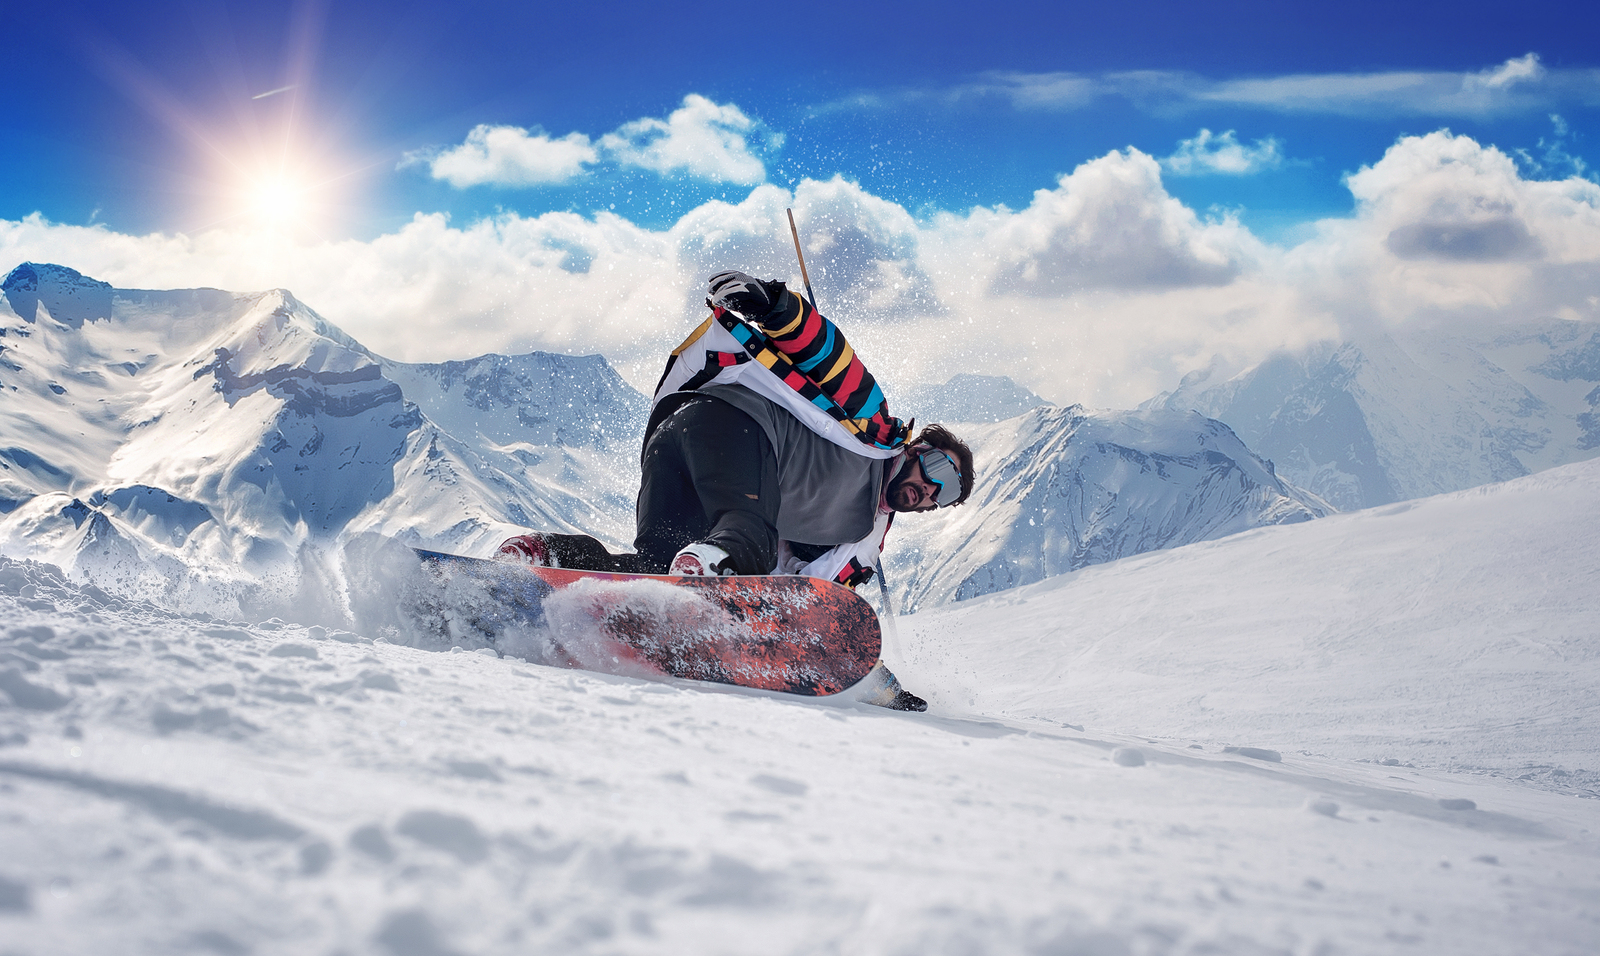 5 reasons why snowboarding is better than skiing